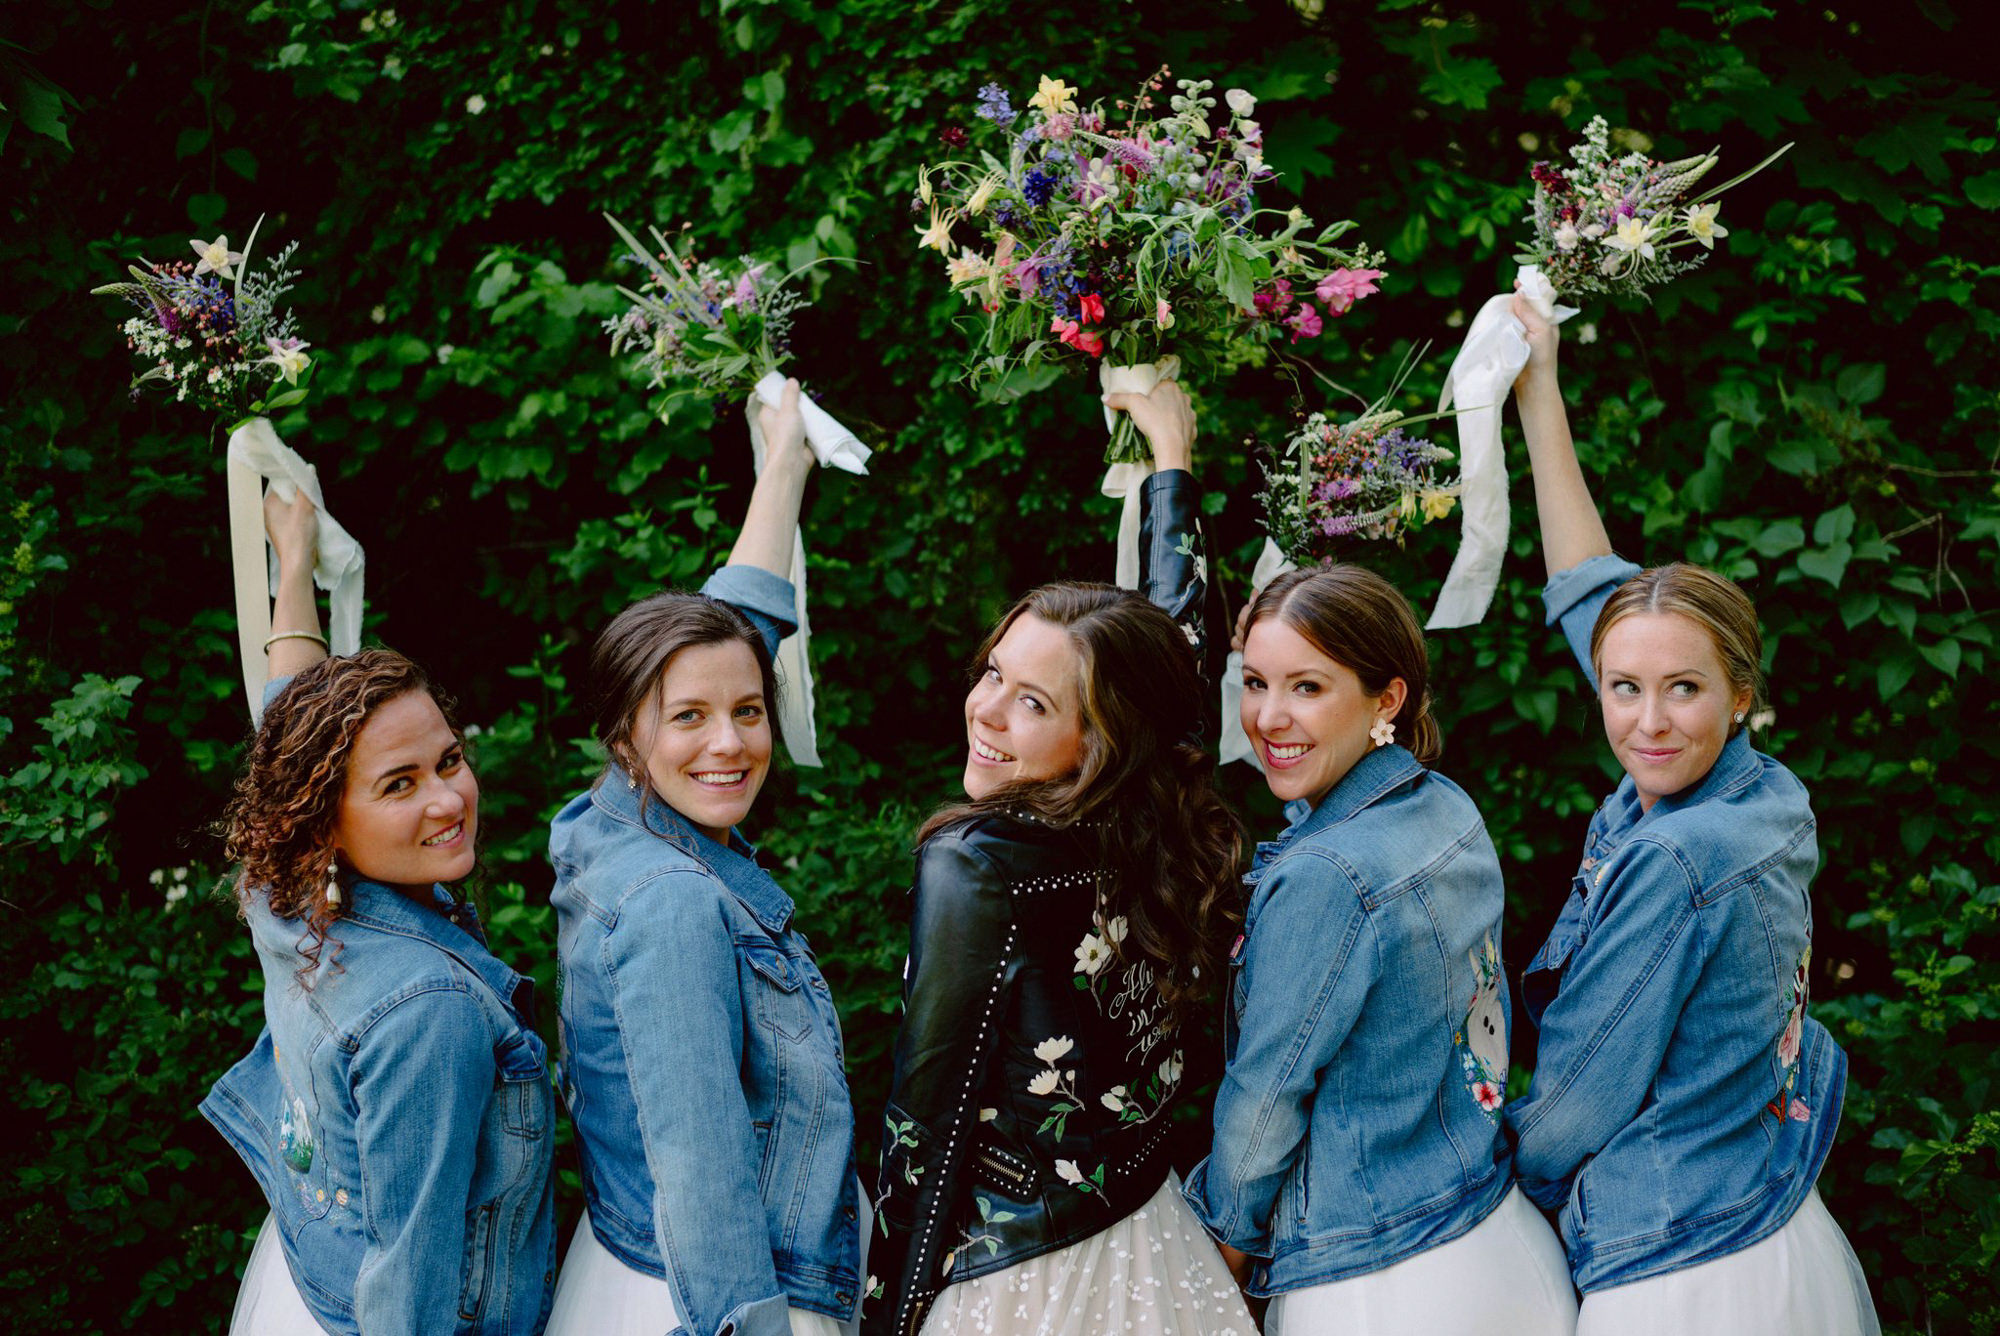 Bridesmaids and bride in cute denim custom jackets, photo by Benj Haisch